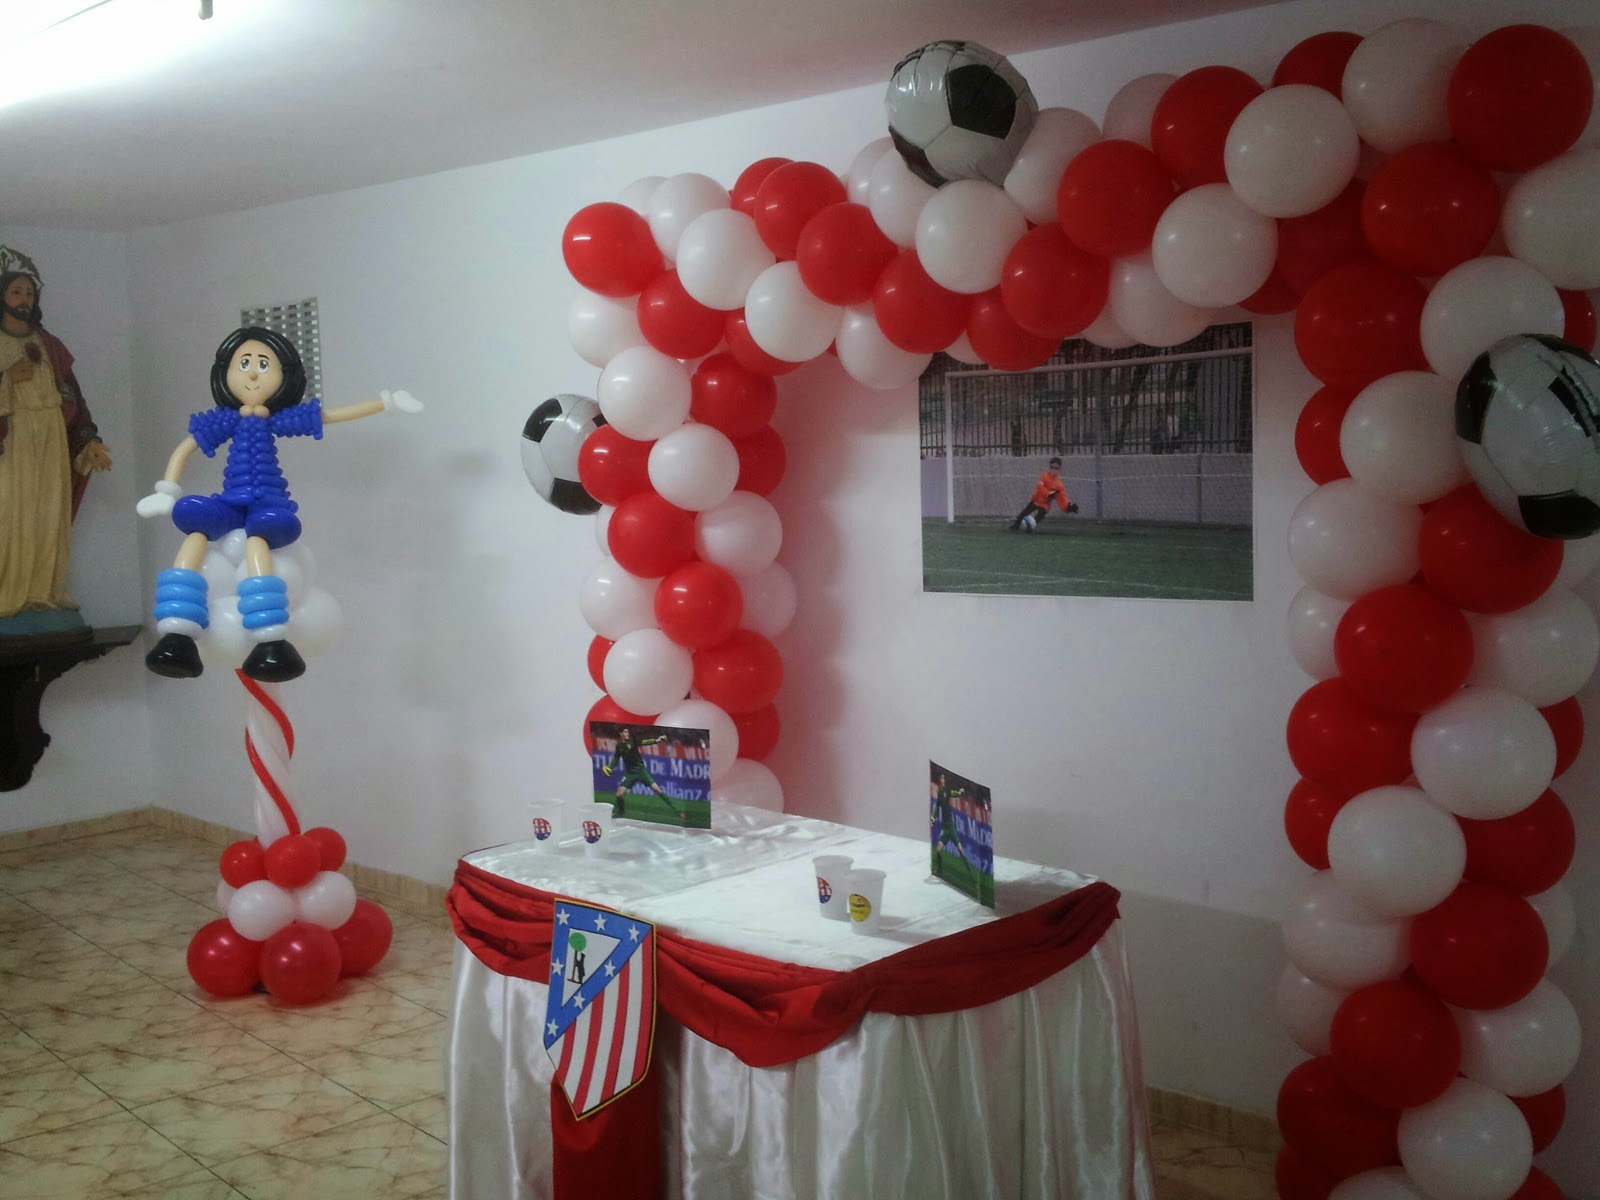 El rinc n de los globos decoraci n atl tico de madrid for Decoracion en madrid